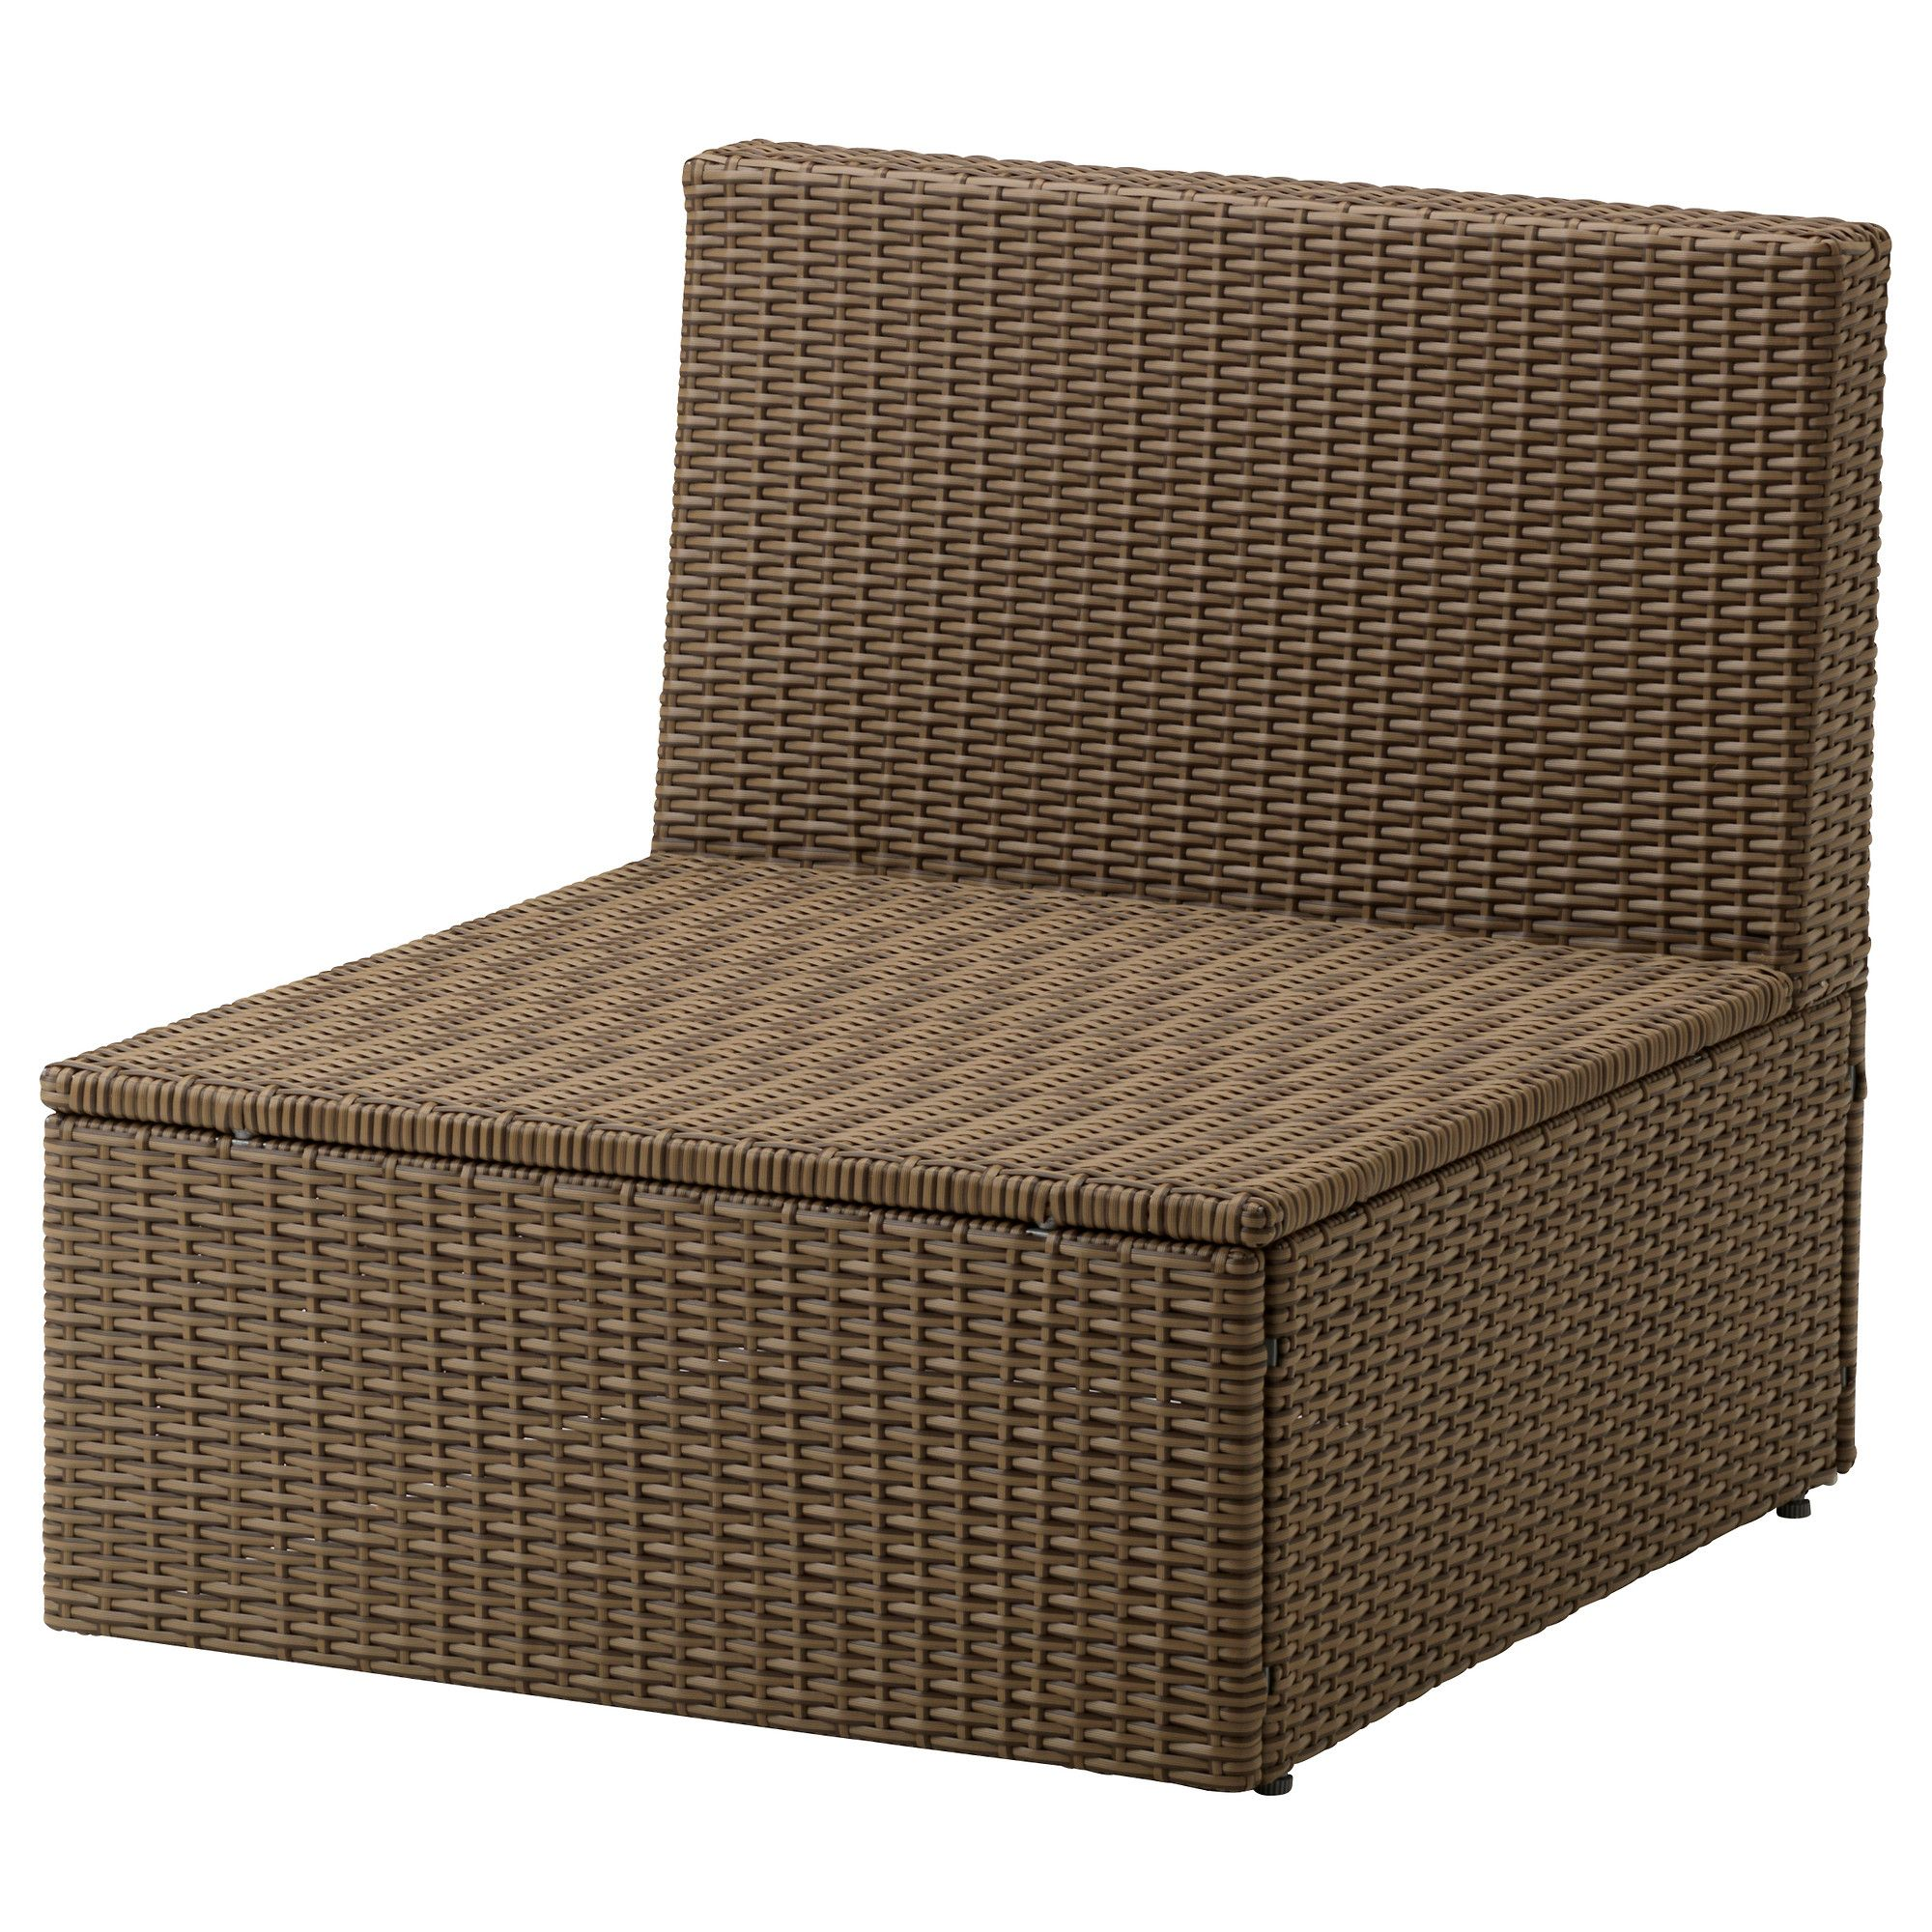 Ikea arholma one seat section outdoor by combining different seating sections you can create a sofa in a shape and size that perfectly suits your